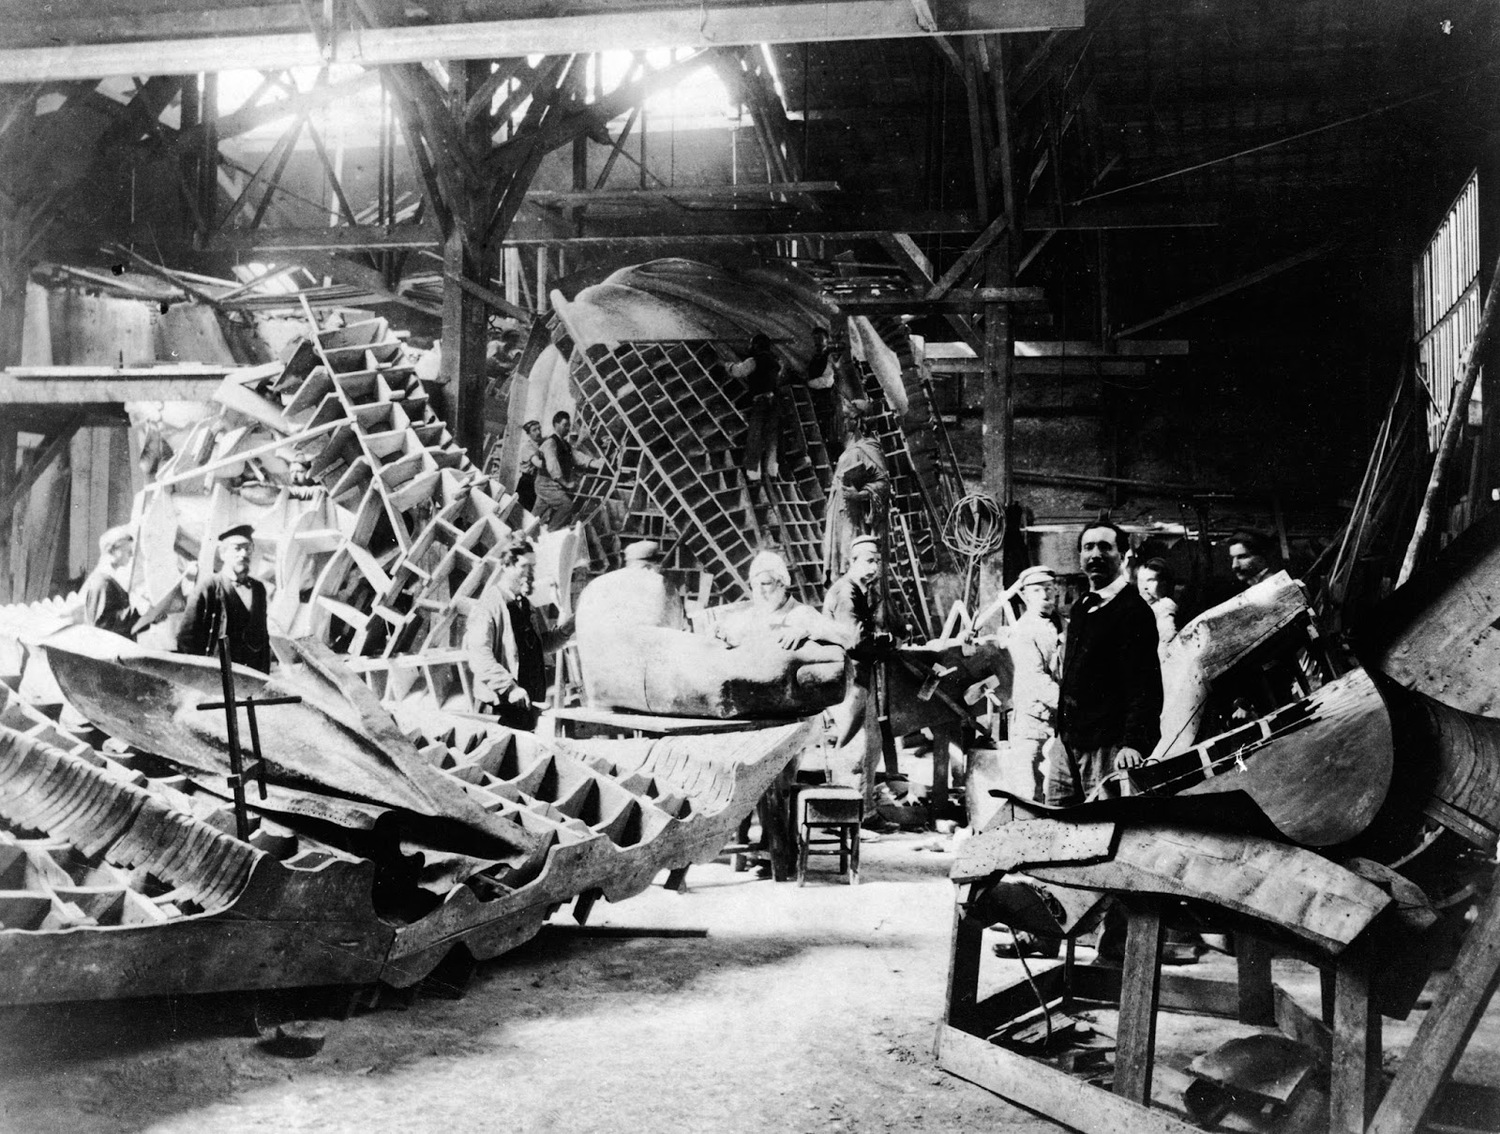 View of portions of the Statue of Liberty during its construction in the workshop of French sculptor Frederic Auguste Bartholdi (seen at left) in Paris circa 1880.